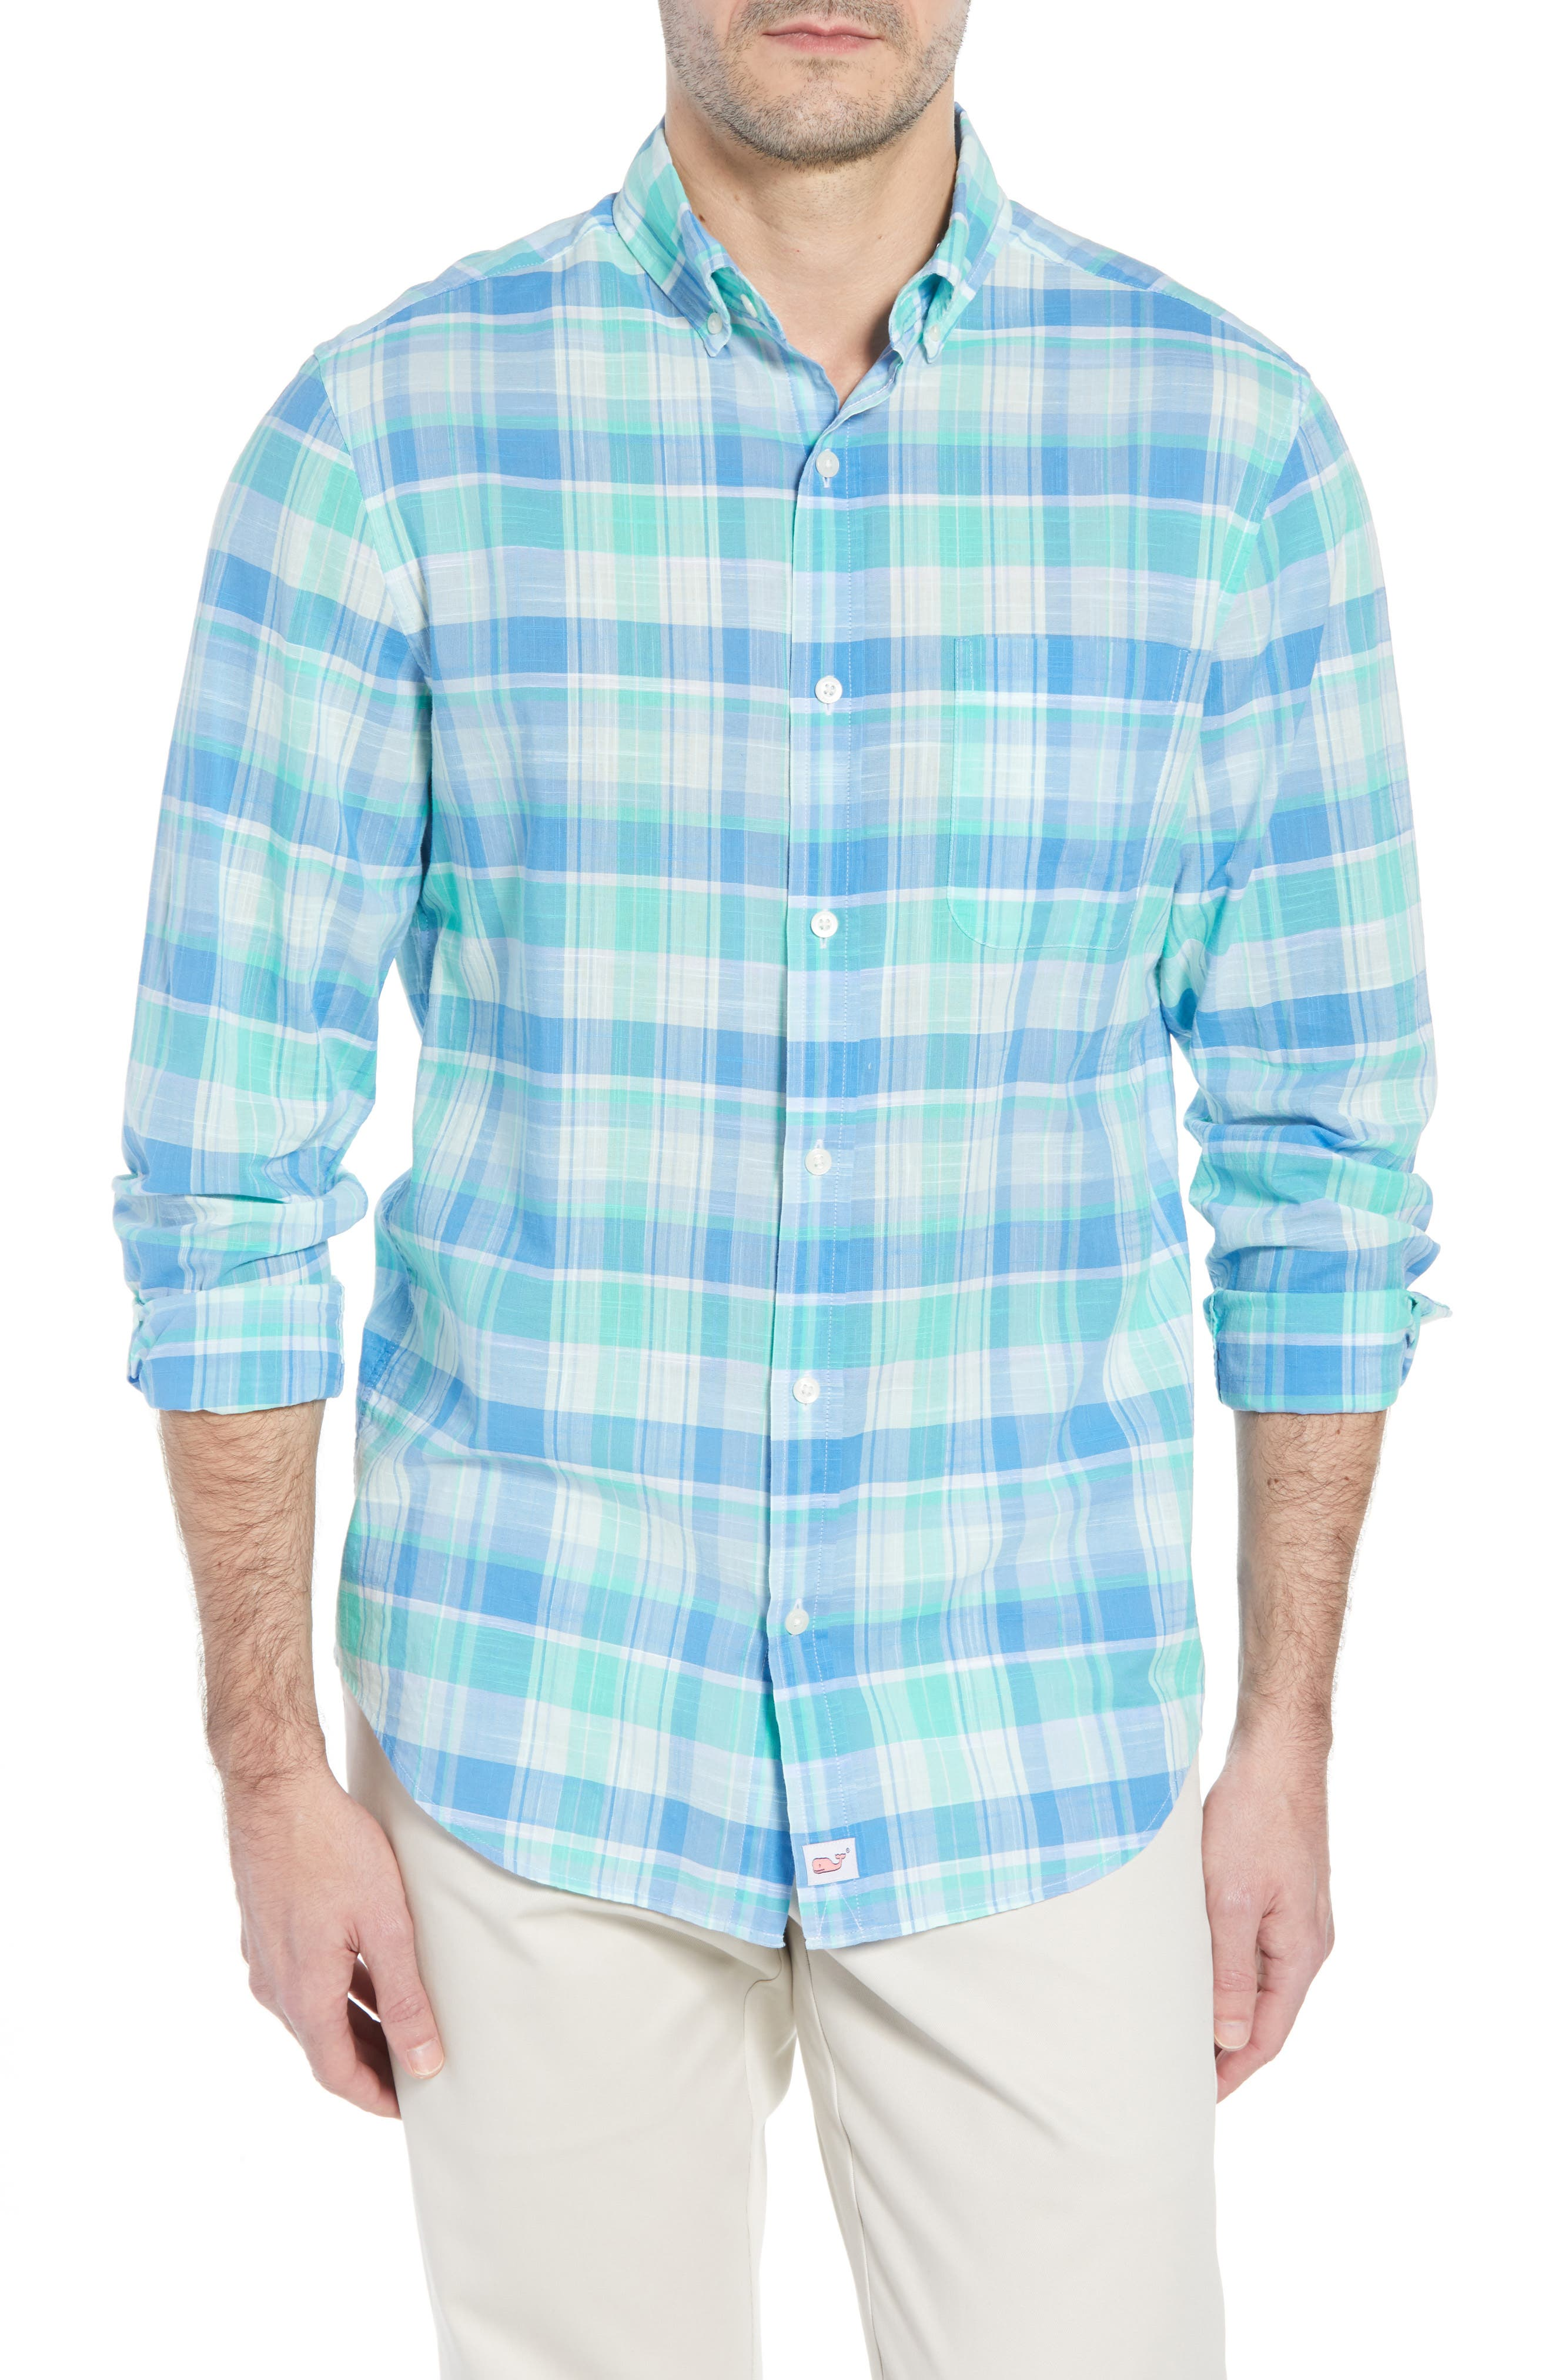 Homer Pond Murray Classic Fit Plaid Sport Shirt,                             Main thumbnail 1, color,